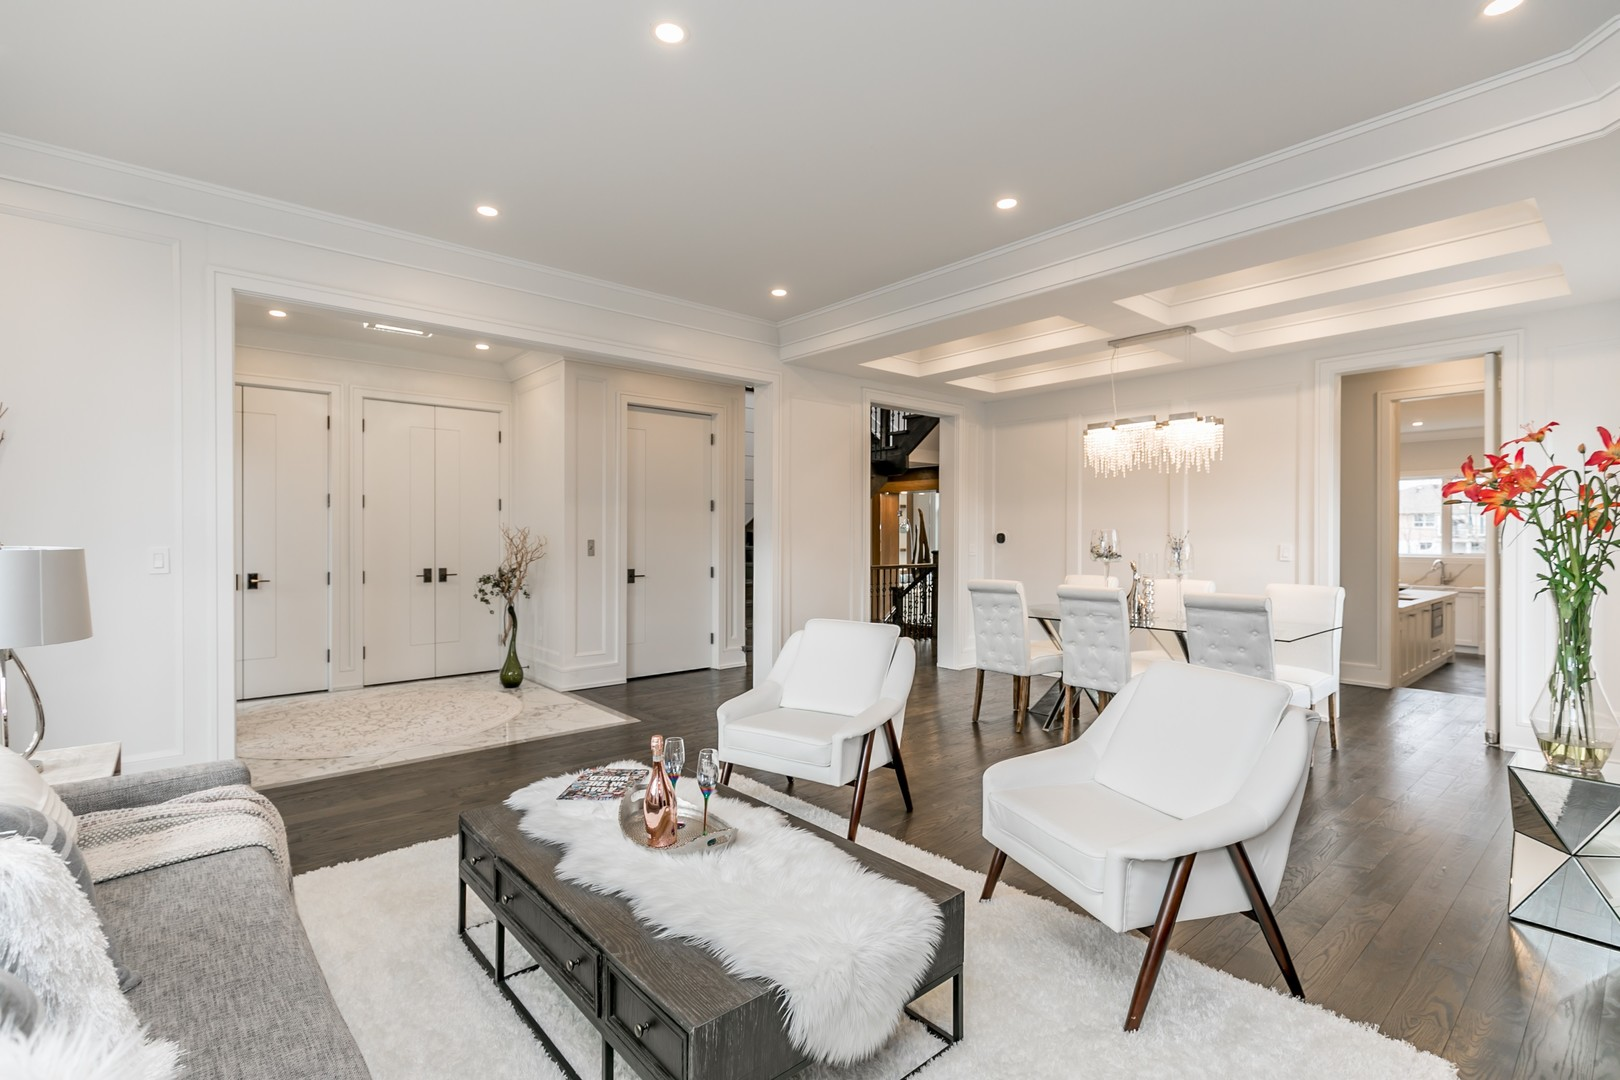 Main Room View, 19 Ryder, Vaughan Home Staging